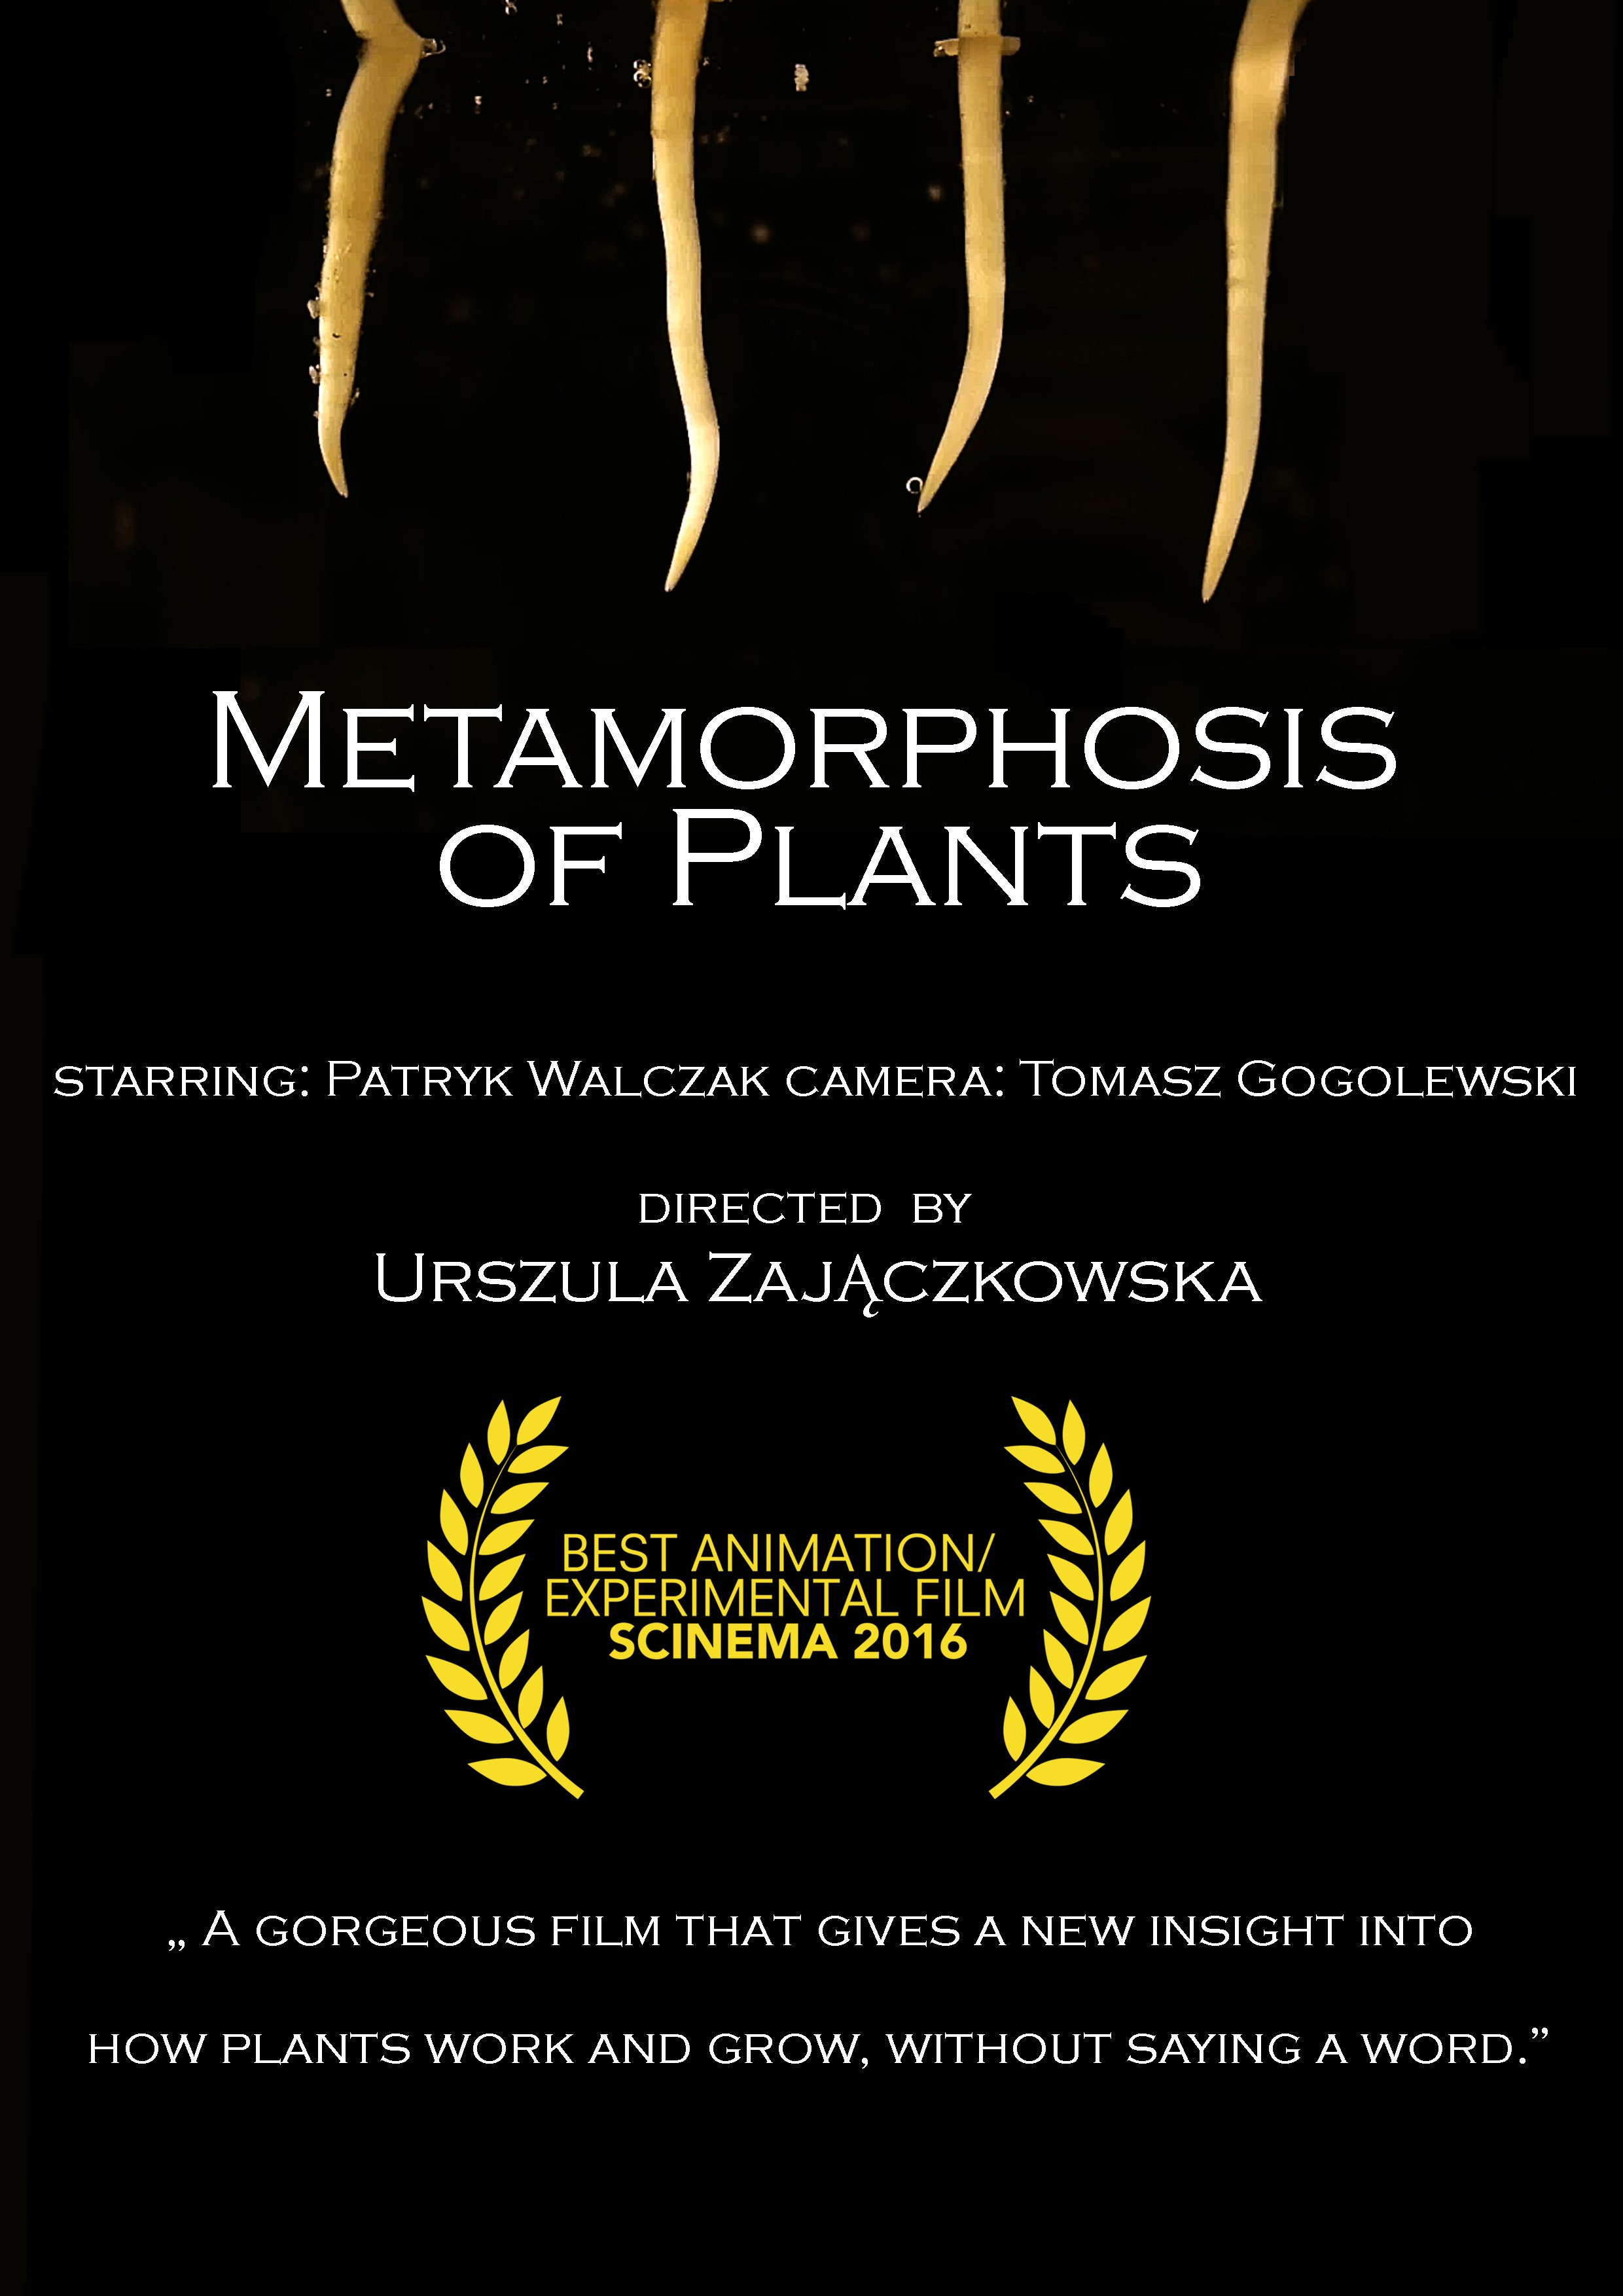 Metamorphosis pf Plants